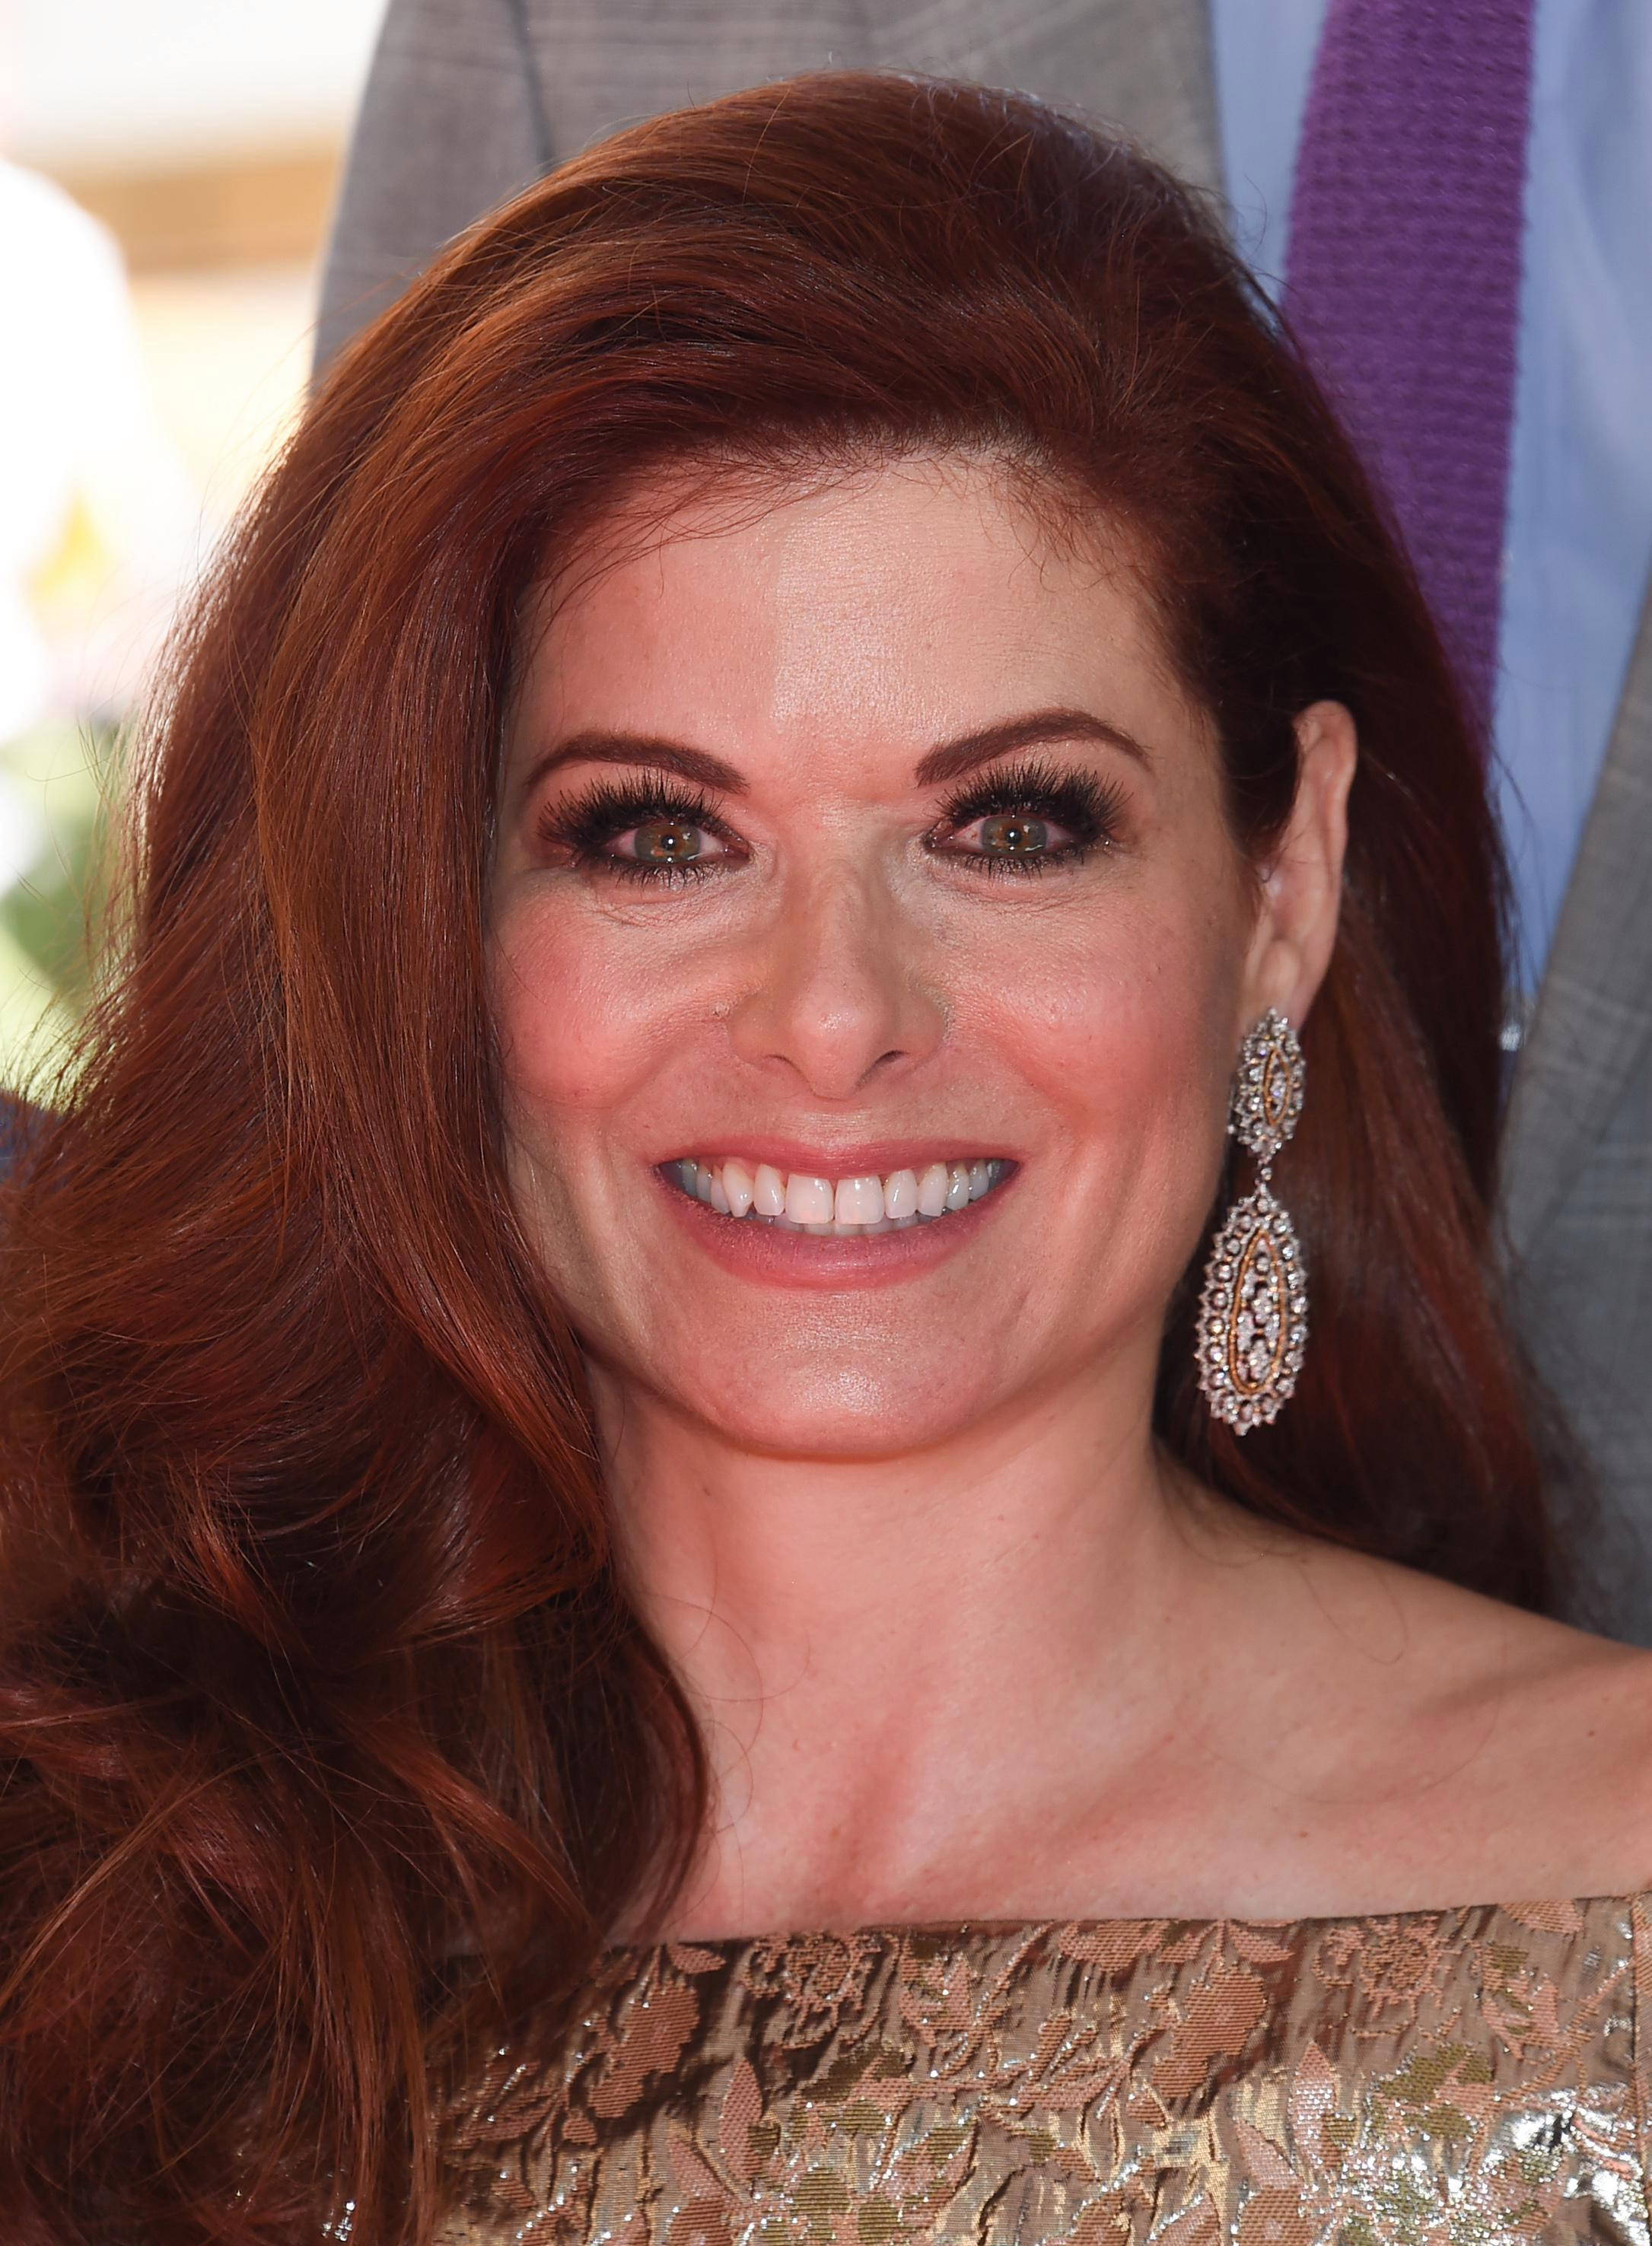 Who is Debra Messing? Grace Adler actress on Will & Grace and The Mothman Prophecies star